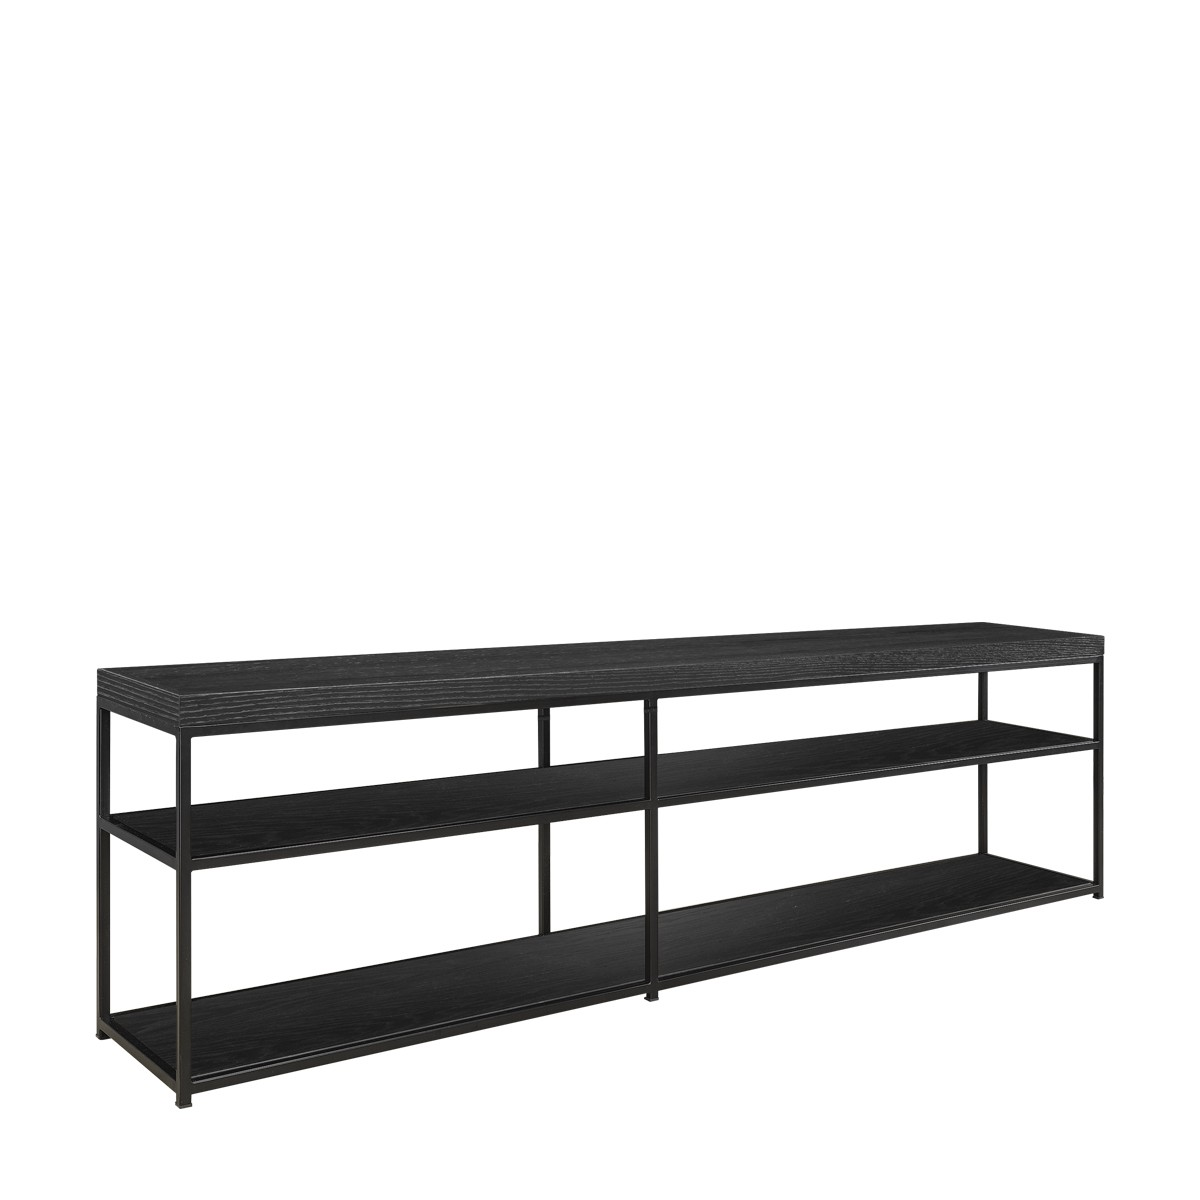 AW MASON media bench black oak